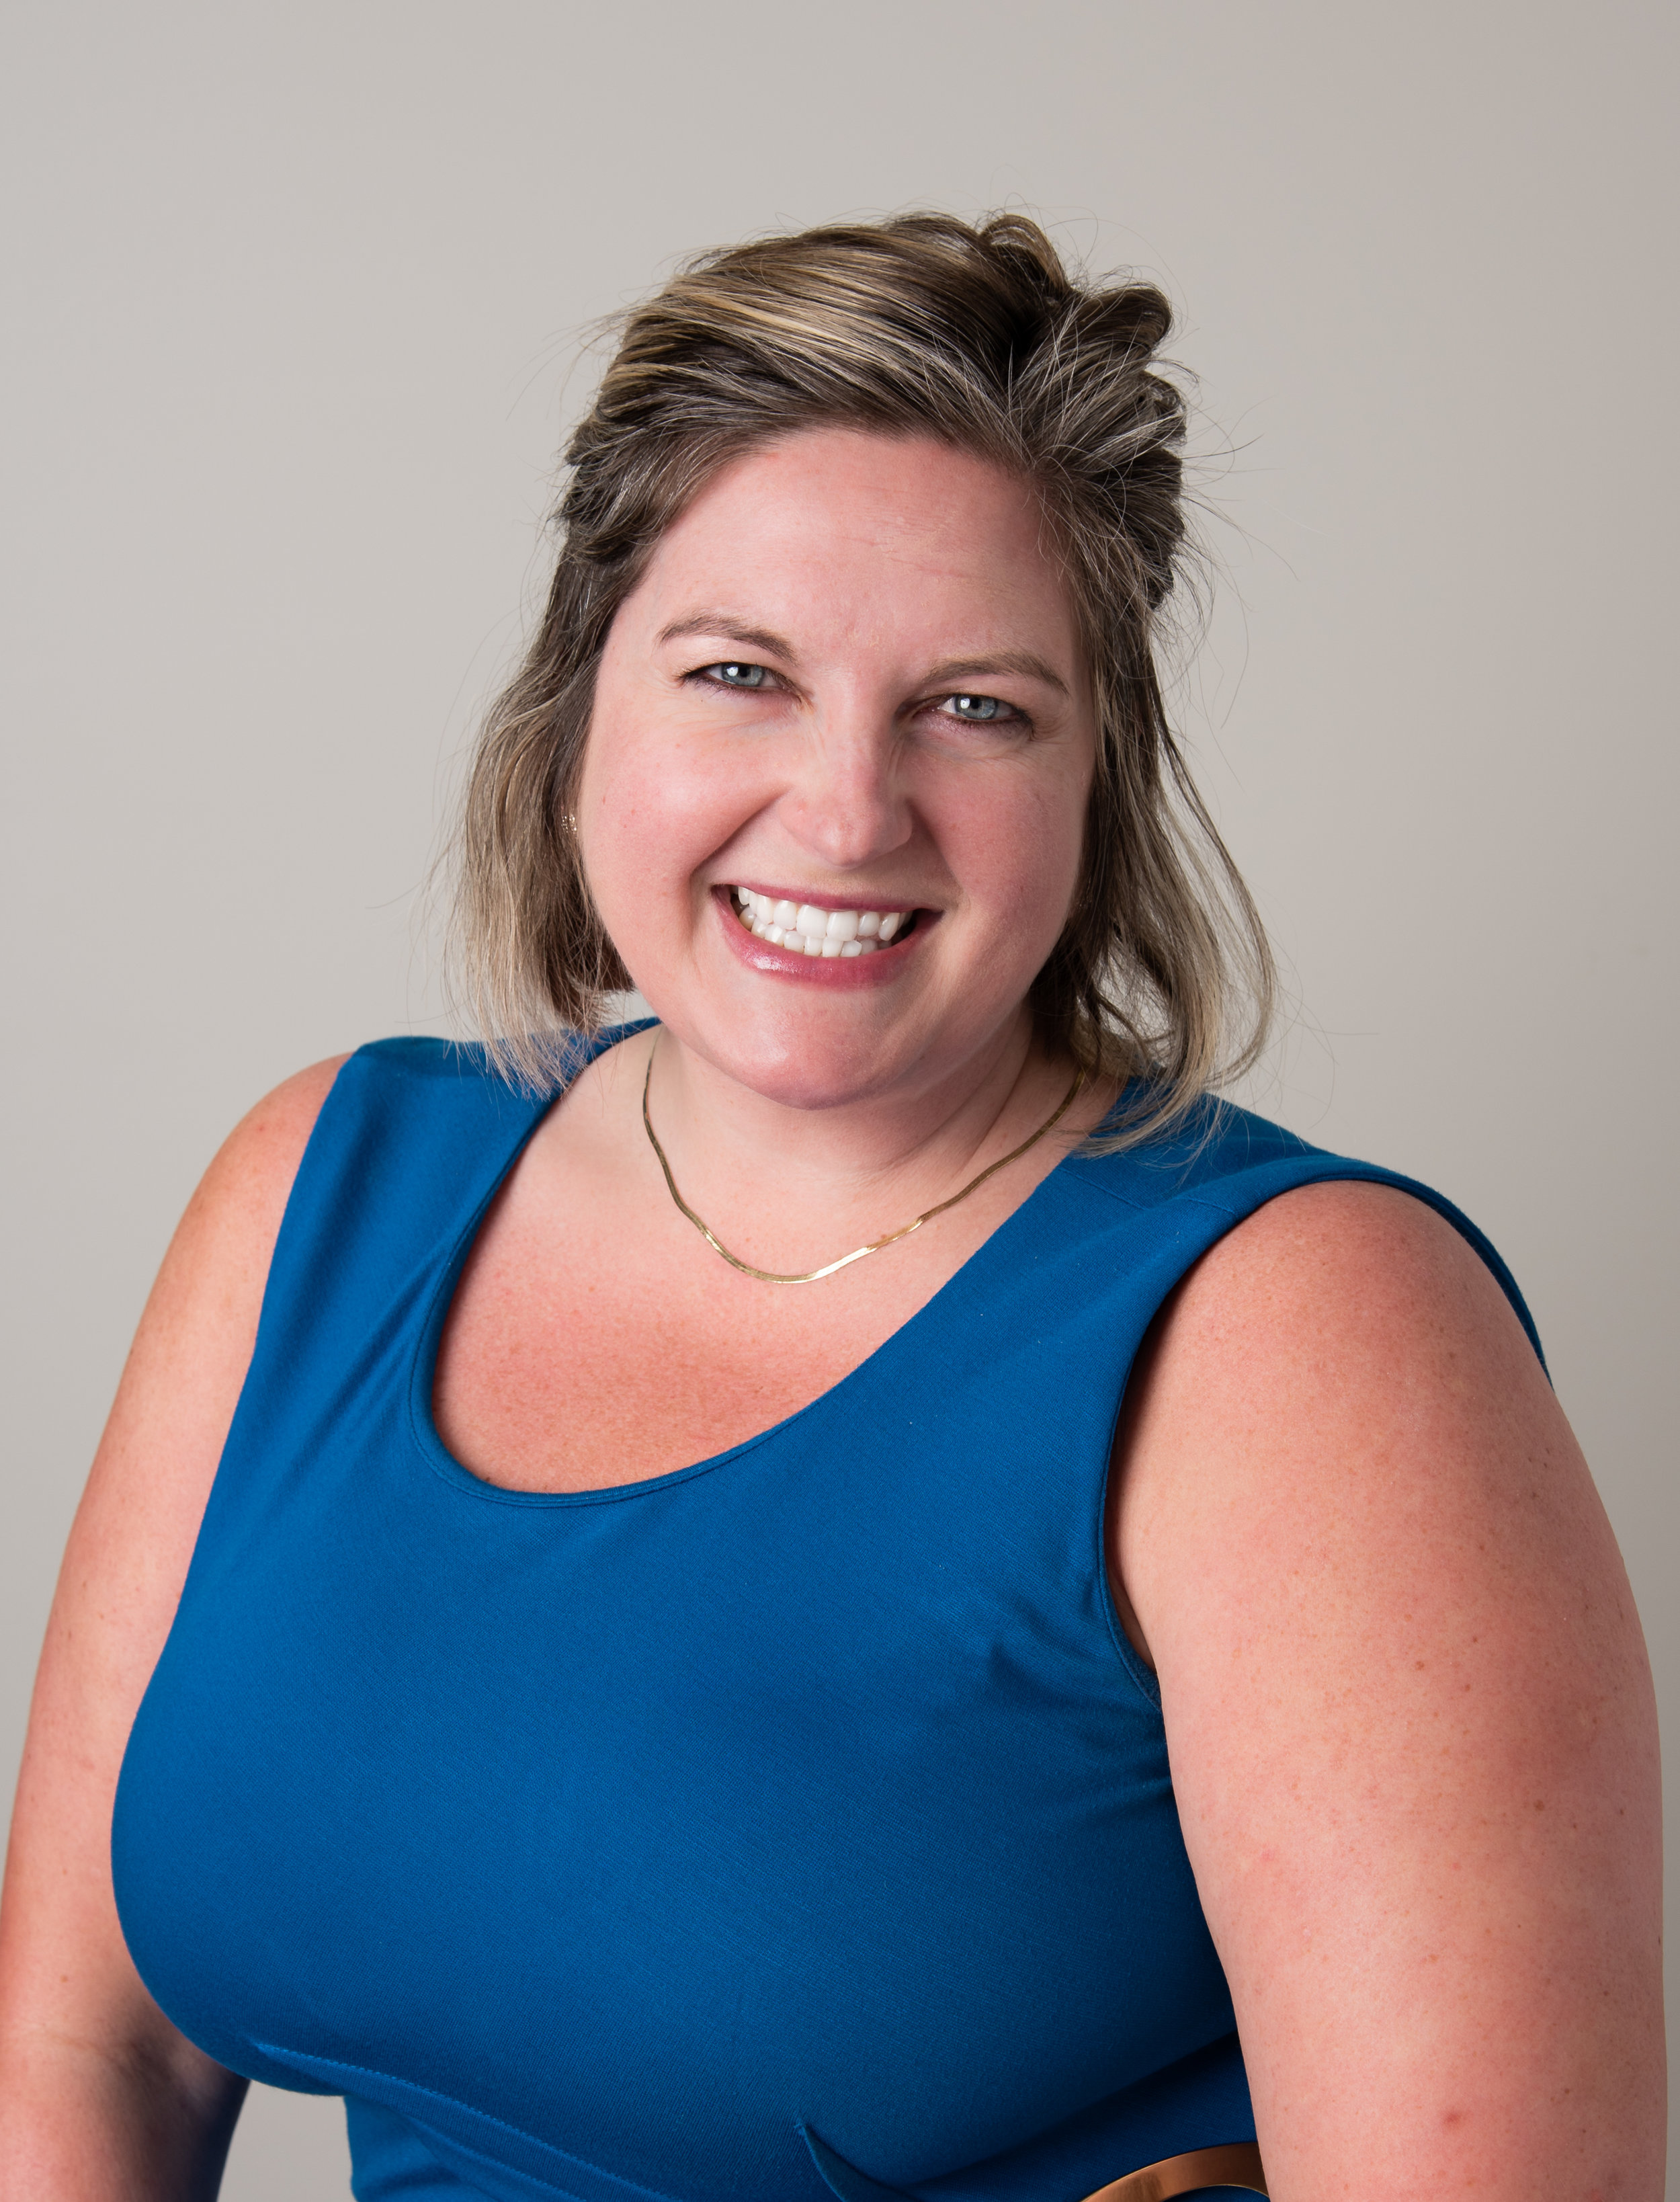 Holly McIlwain - As the director of Leadership Development Practice for Talerico Group, Holly spends a lot of time helping individuals understand how perspective, intention, and communication impact the ability to productively resolve conflicts.